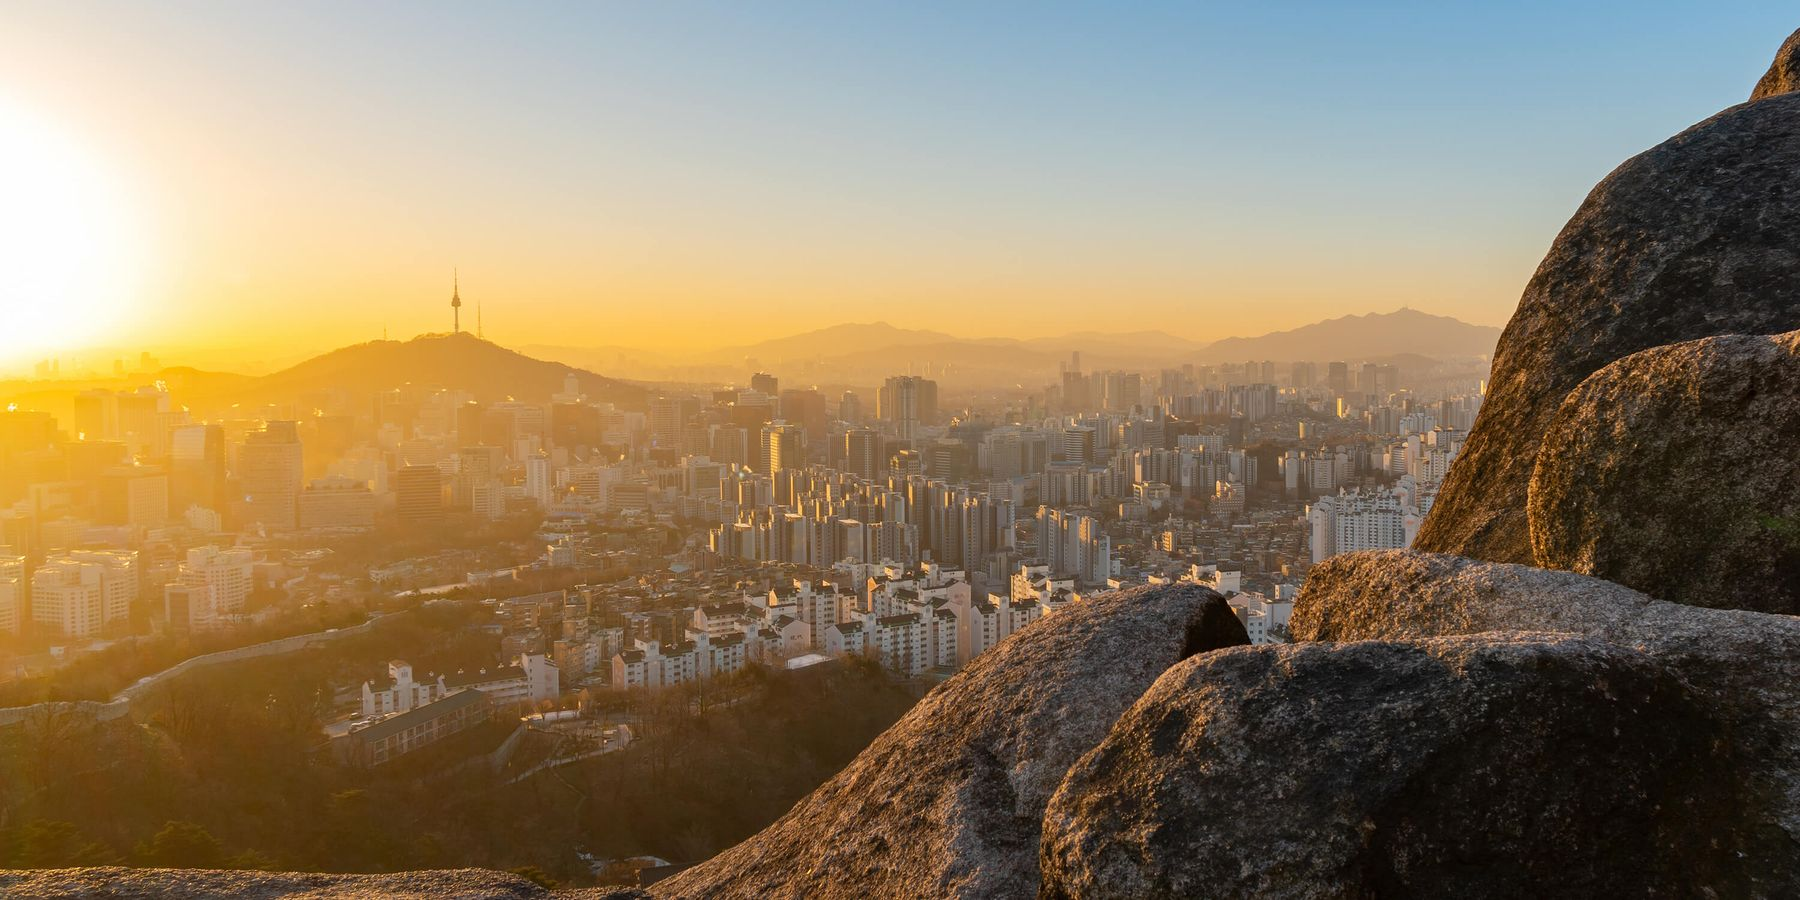 Sunset city view from a mountain